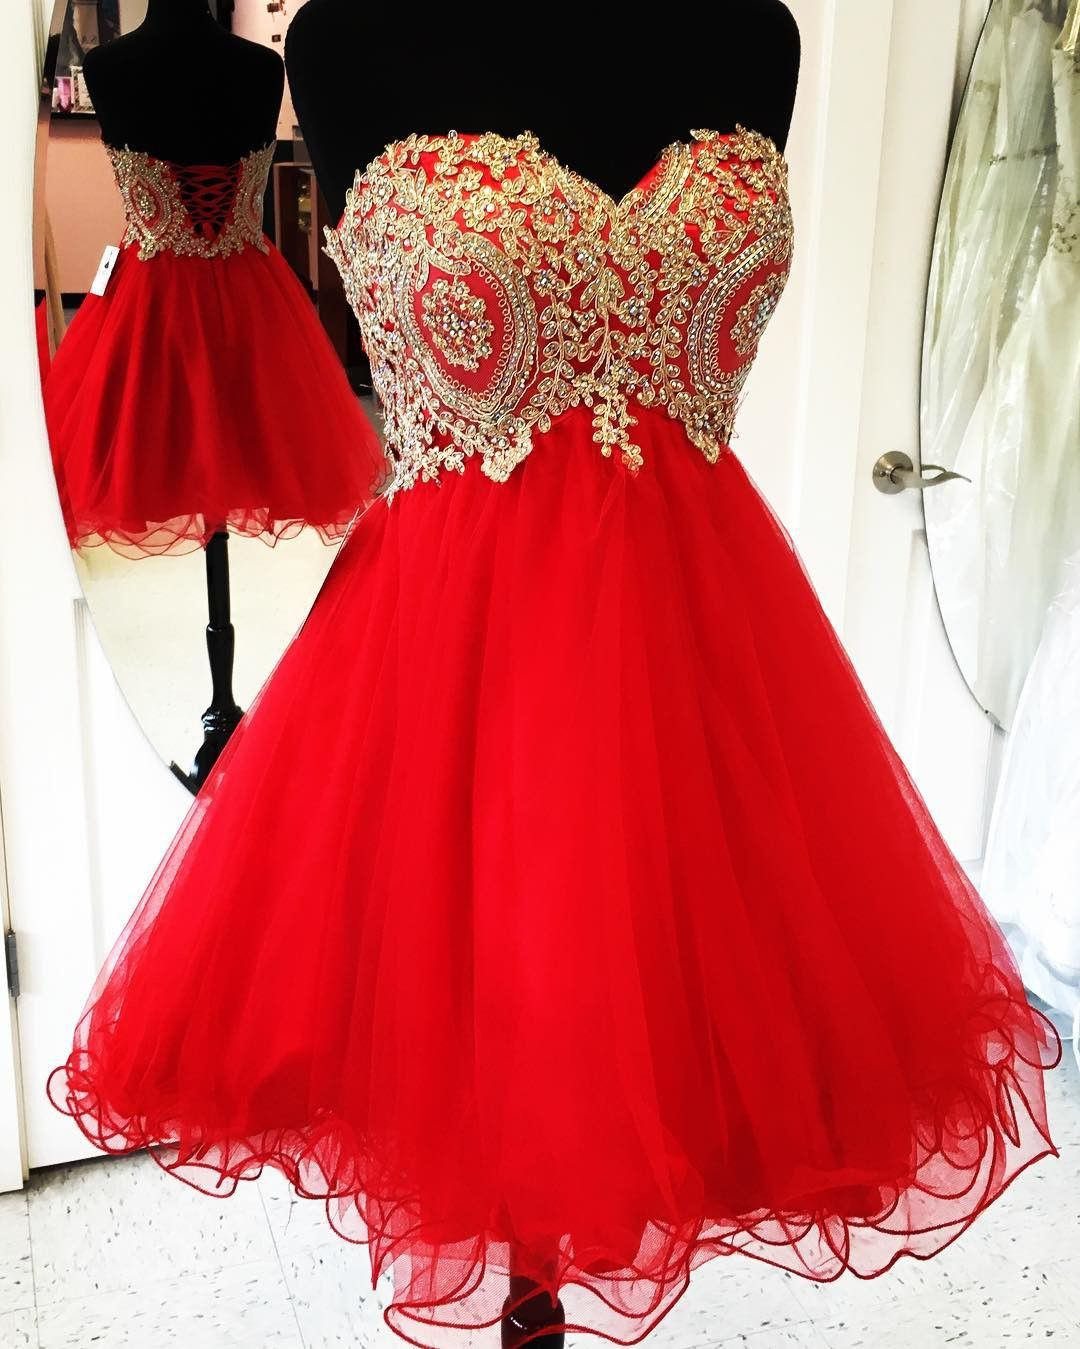 Gold Lace Appliques Short Red Homecoming Dresses Cocktail Party